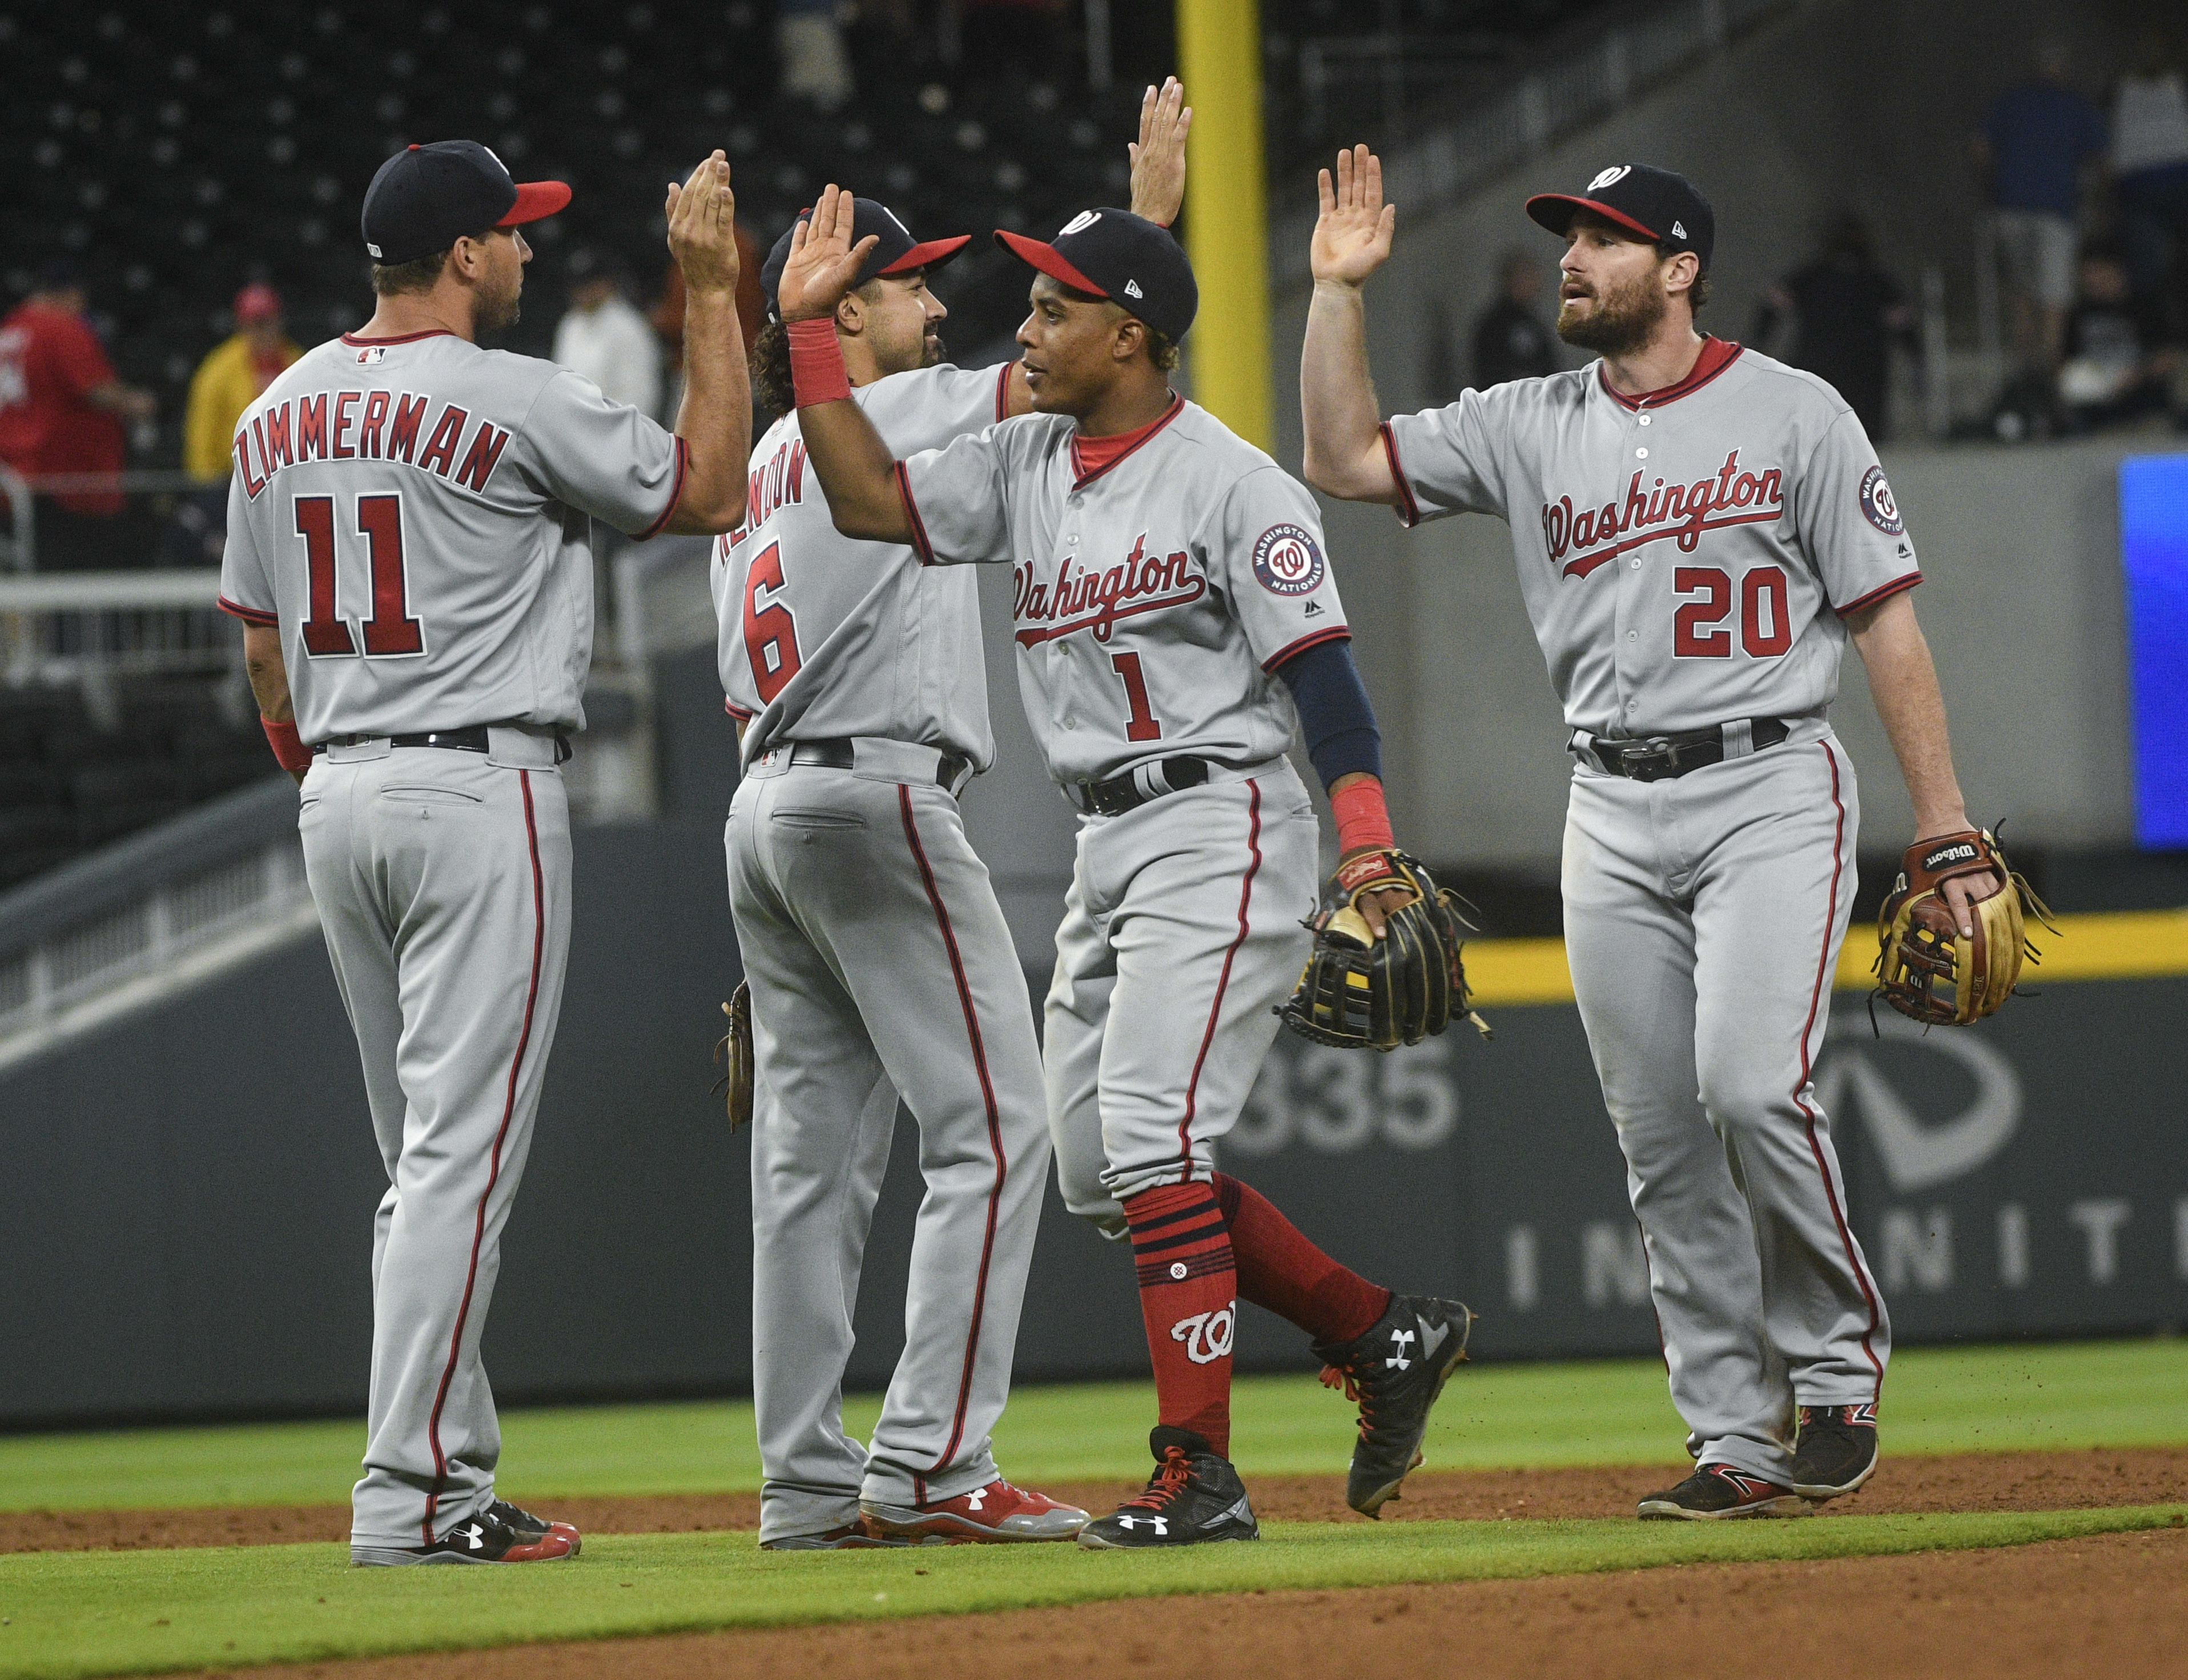 Washington Nationals' Ryan Zimmerman (11), Anthony Rendon (6), Wilmer Difo (1) and Daniel Murphy (20) celebrate after a baseball game against the Atlanta Braves, Tuesday, April 18, 2017, in Atlanta. Washington won 3-1. (AP Photo/John Amis)